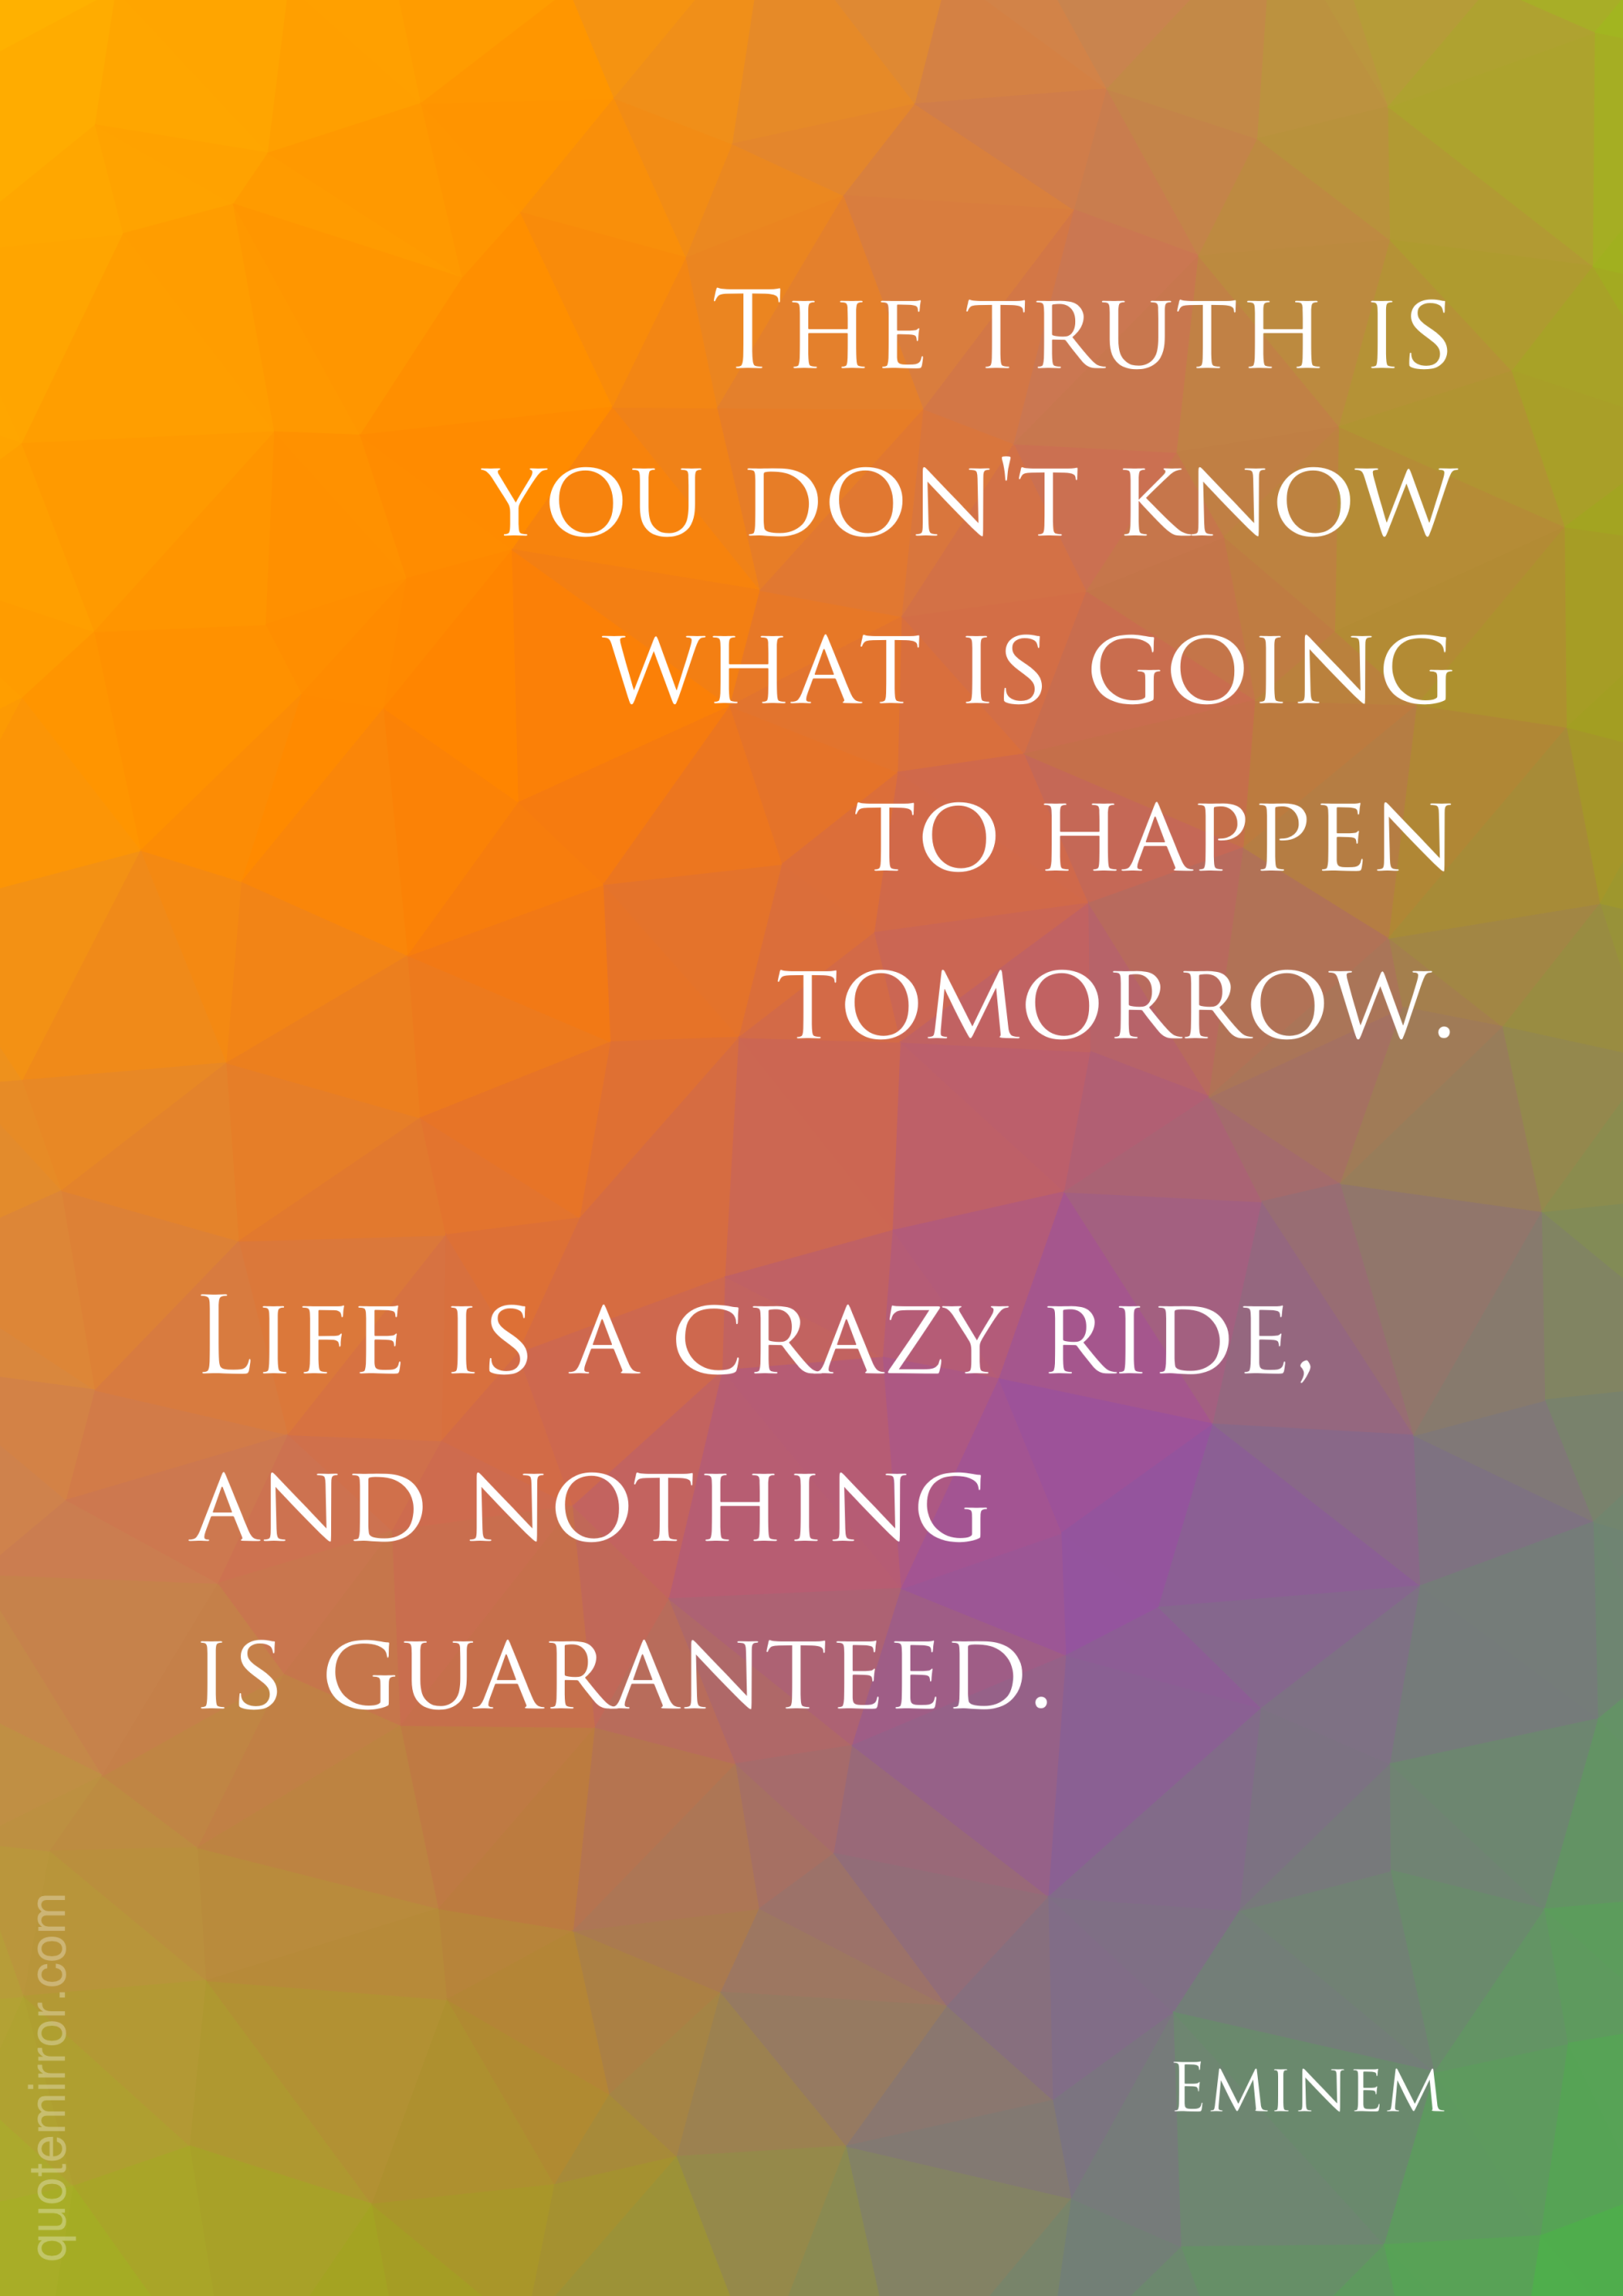 Life is a crazy ride | Riding quotes, Truth quotes, Cool words